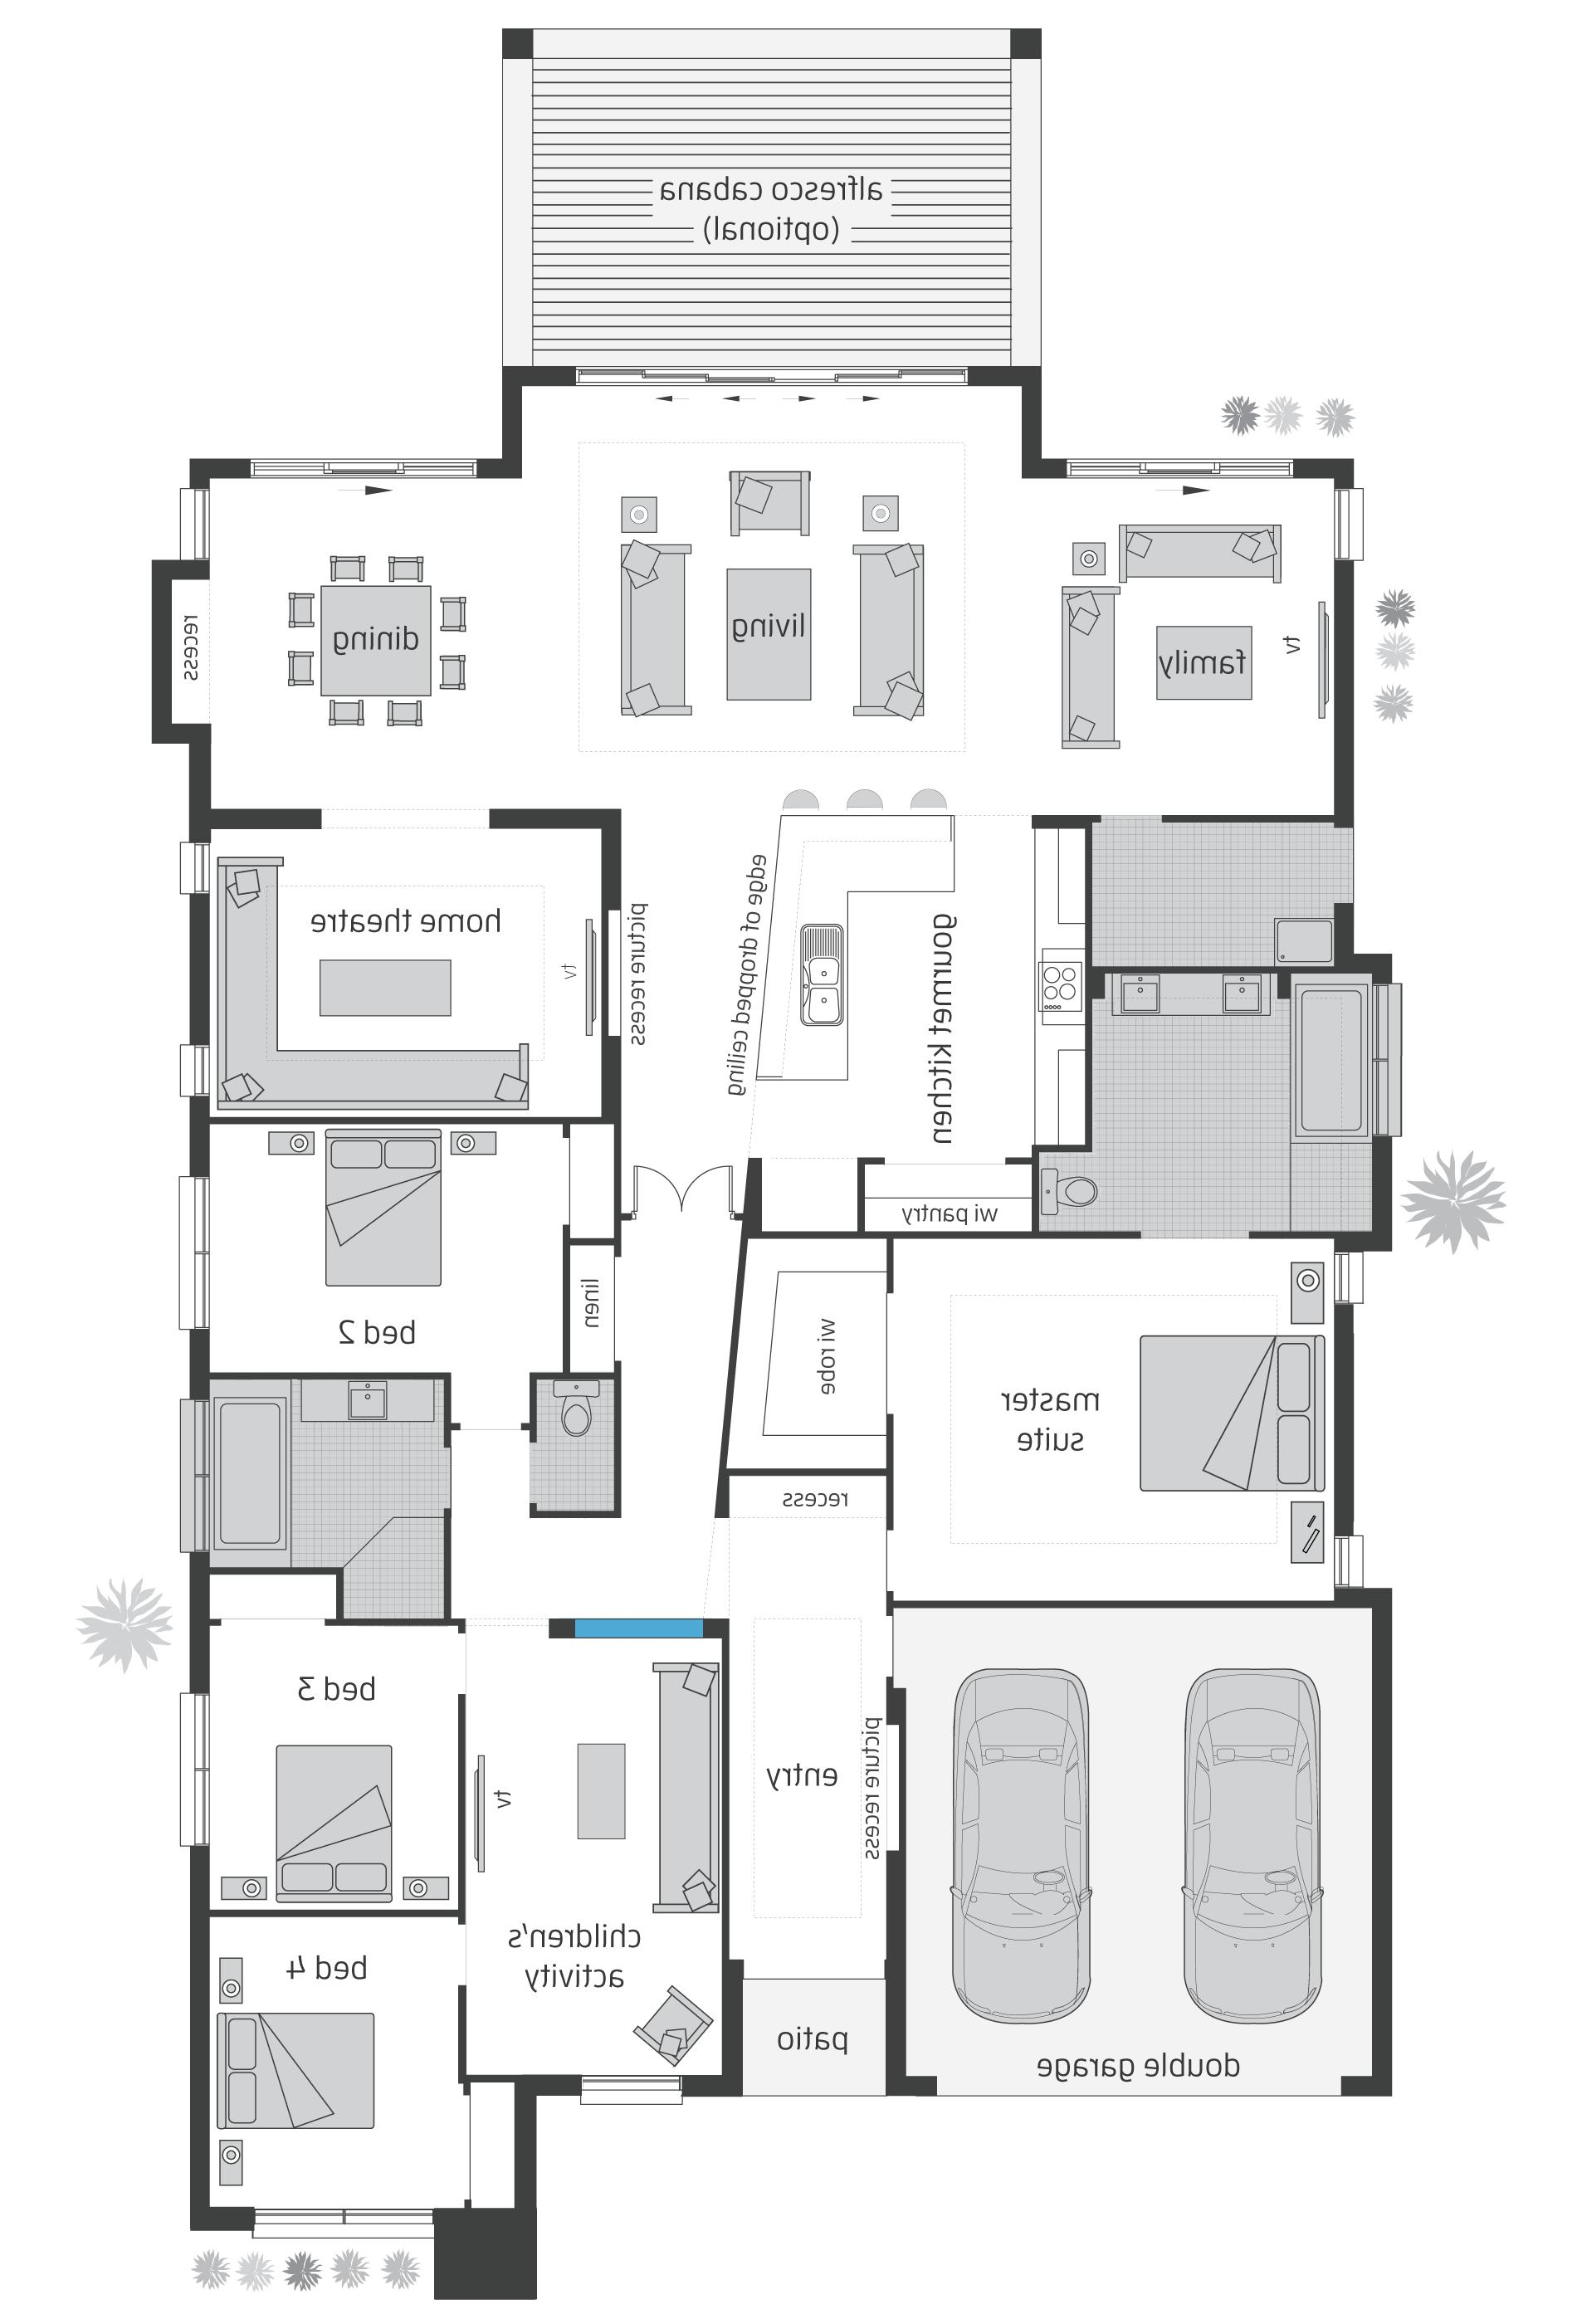 Free Printable Small House Plans Home Design Small House Barn Floor - Free Printable Small House Plans